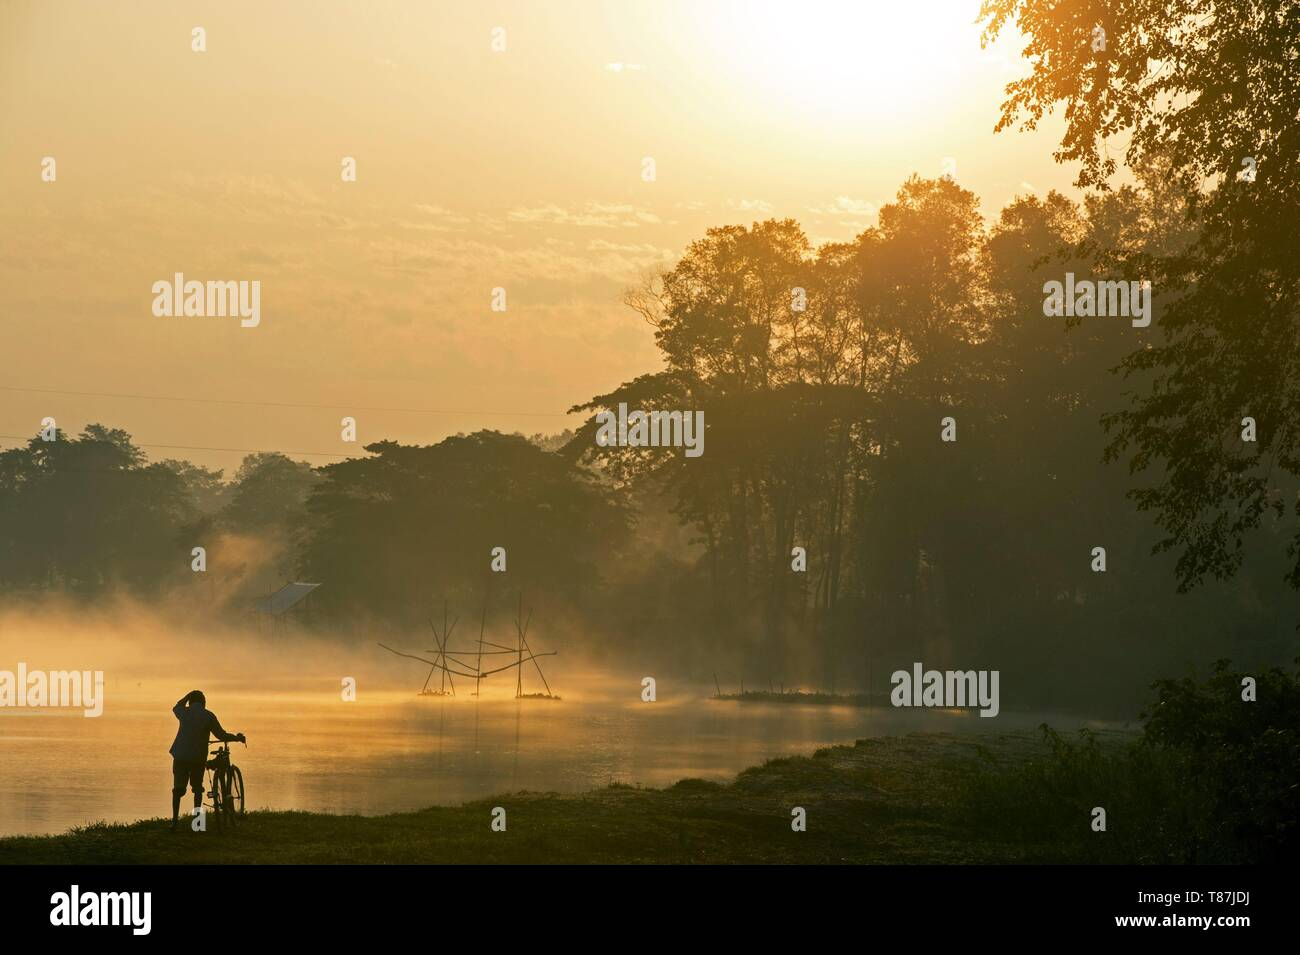 India, Assam, Majuli island in the middle of the Brahmapoutre river, fishing nets - Stock Image